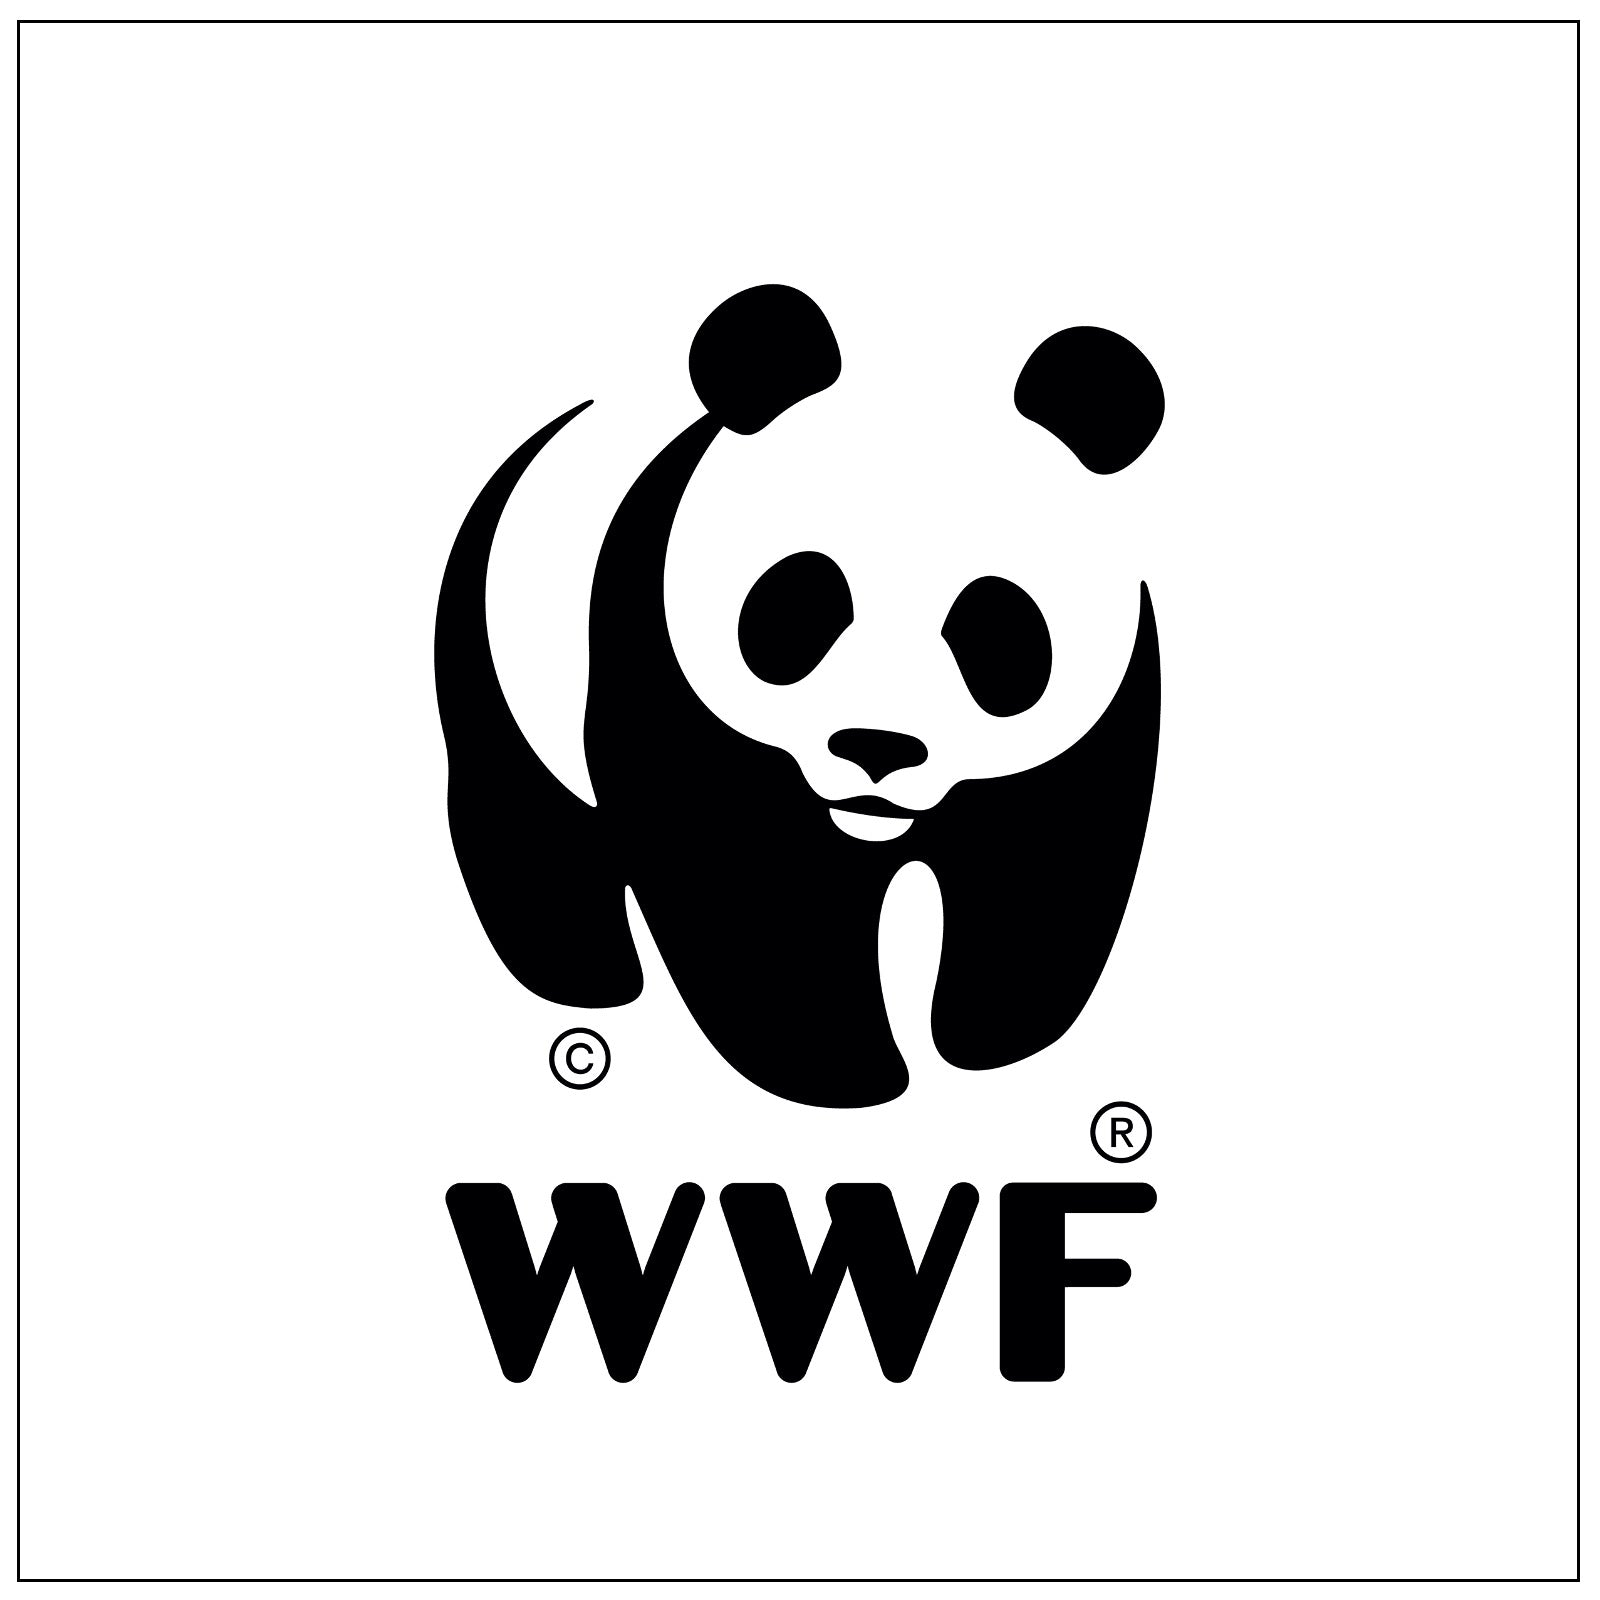 WWF-Philippines for Typhoon relief